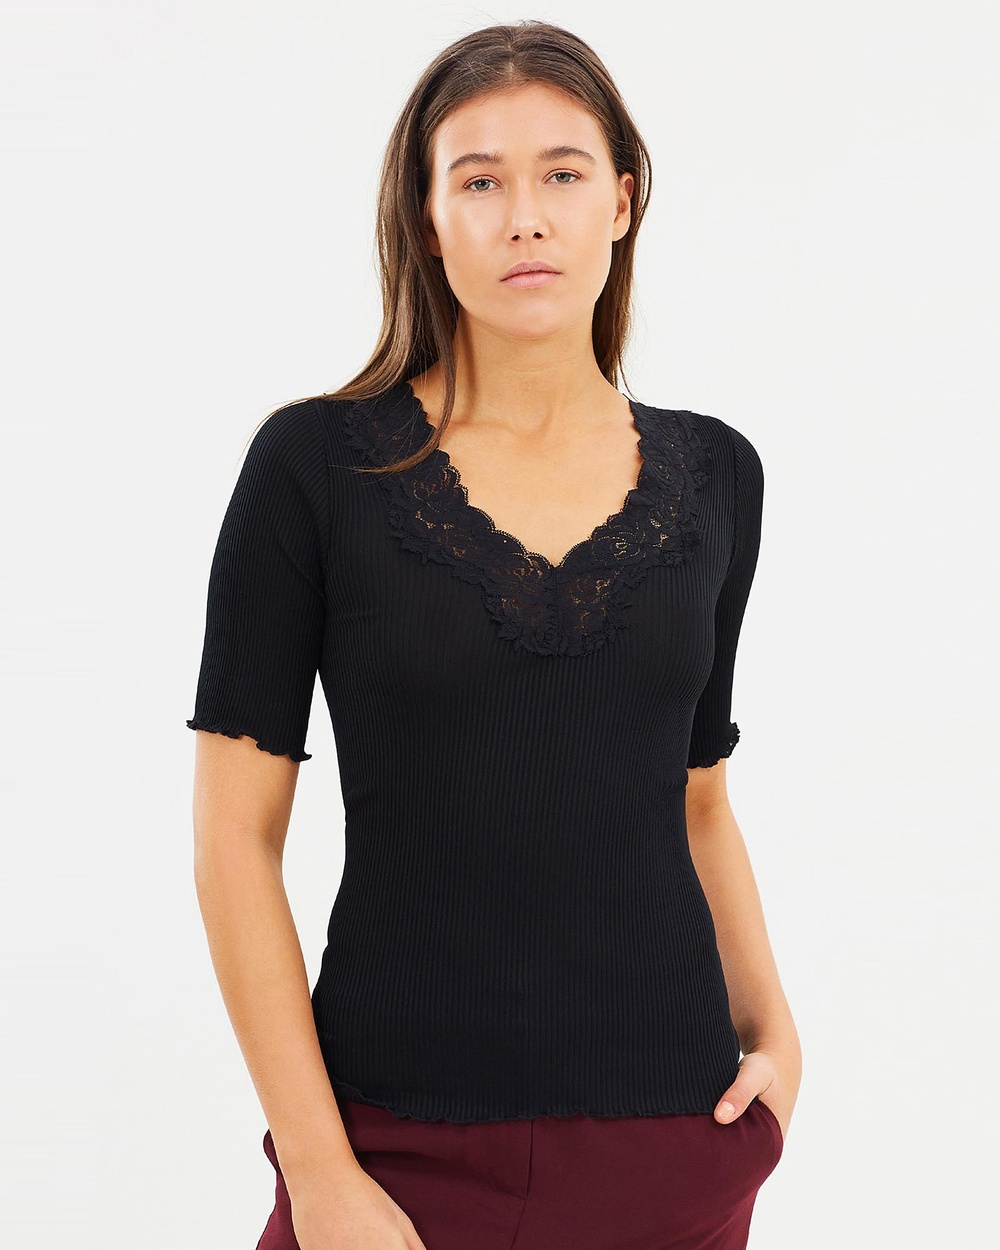 Grace Willow Judy Seamless Lace Top Tops Black Judy Seamless Lace Top